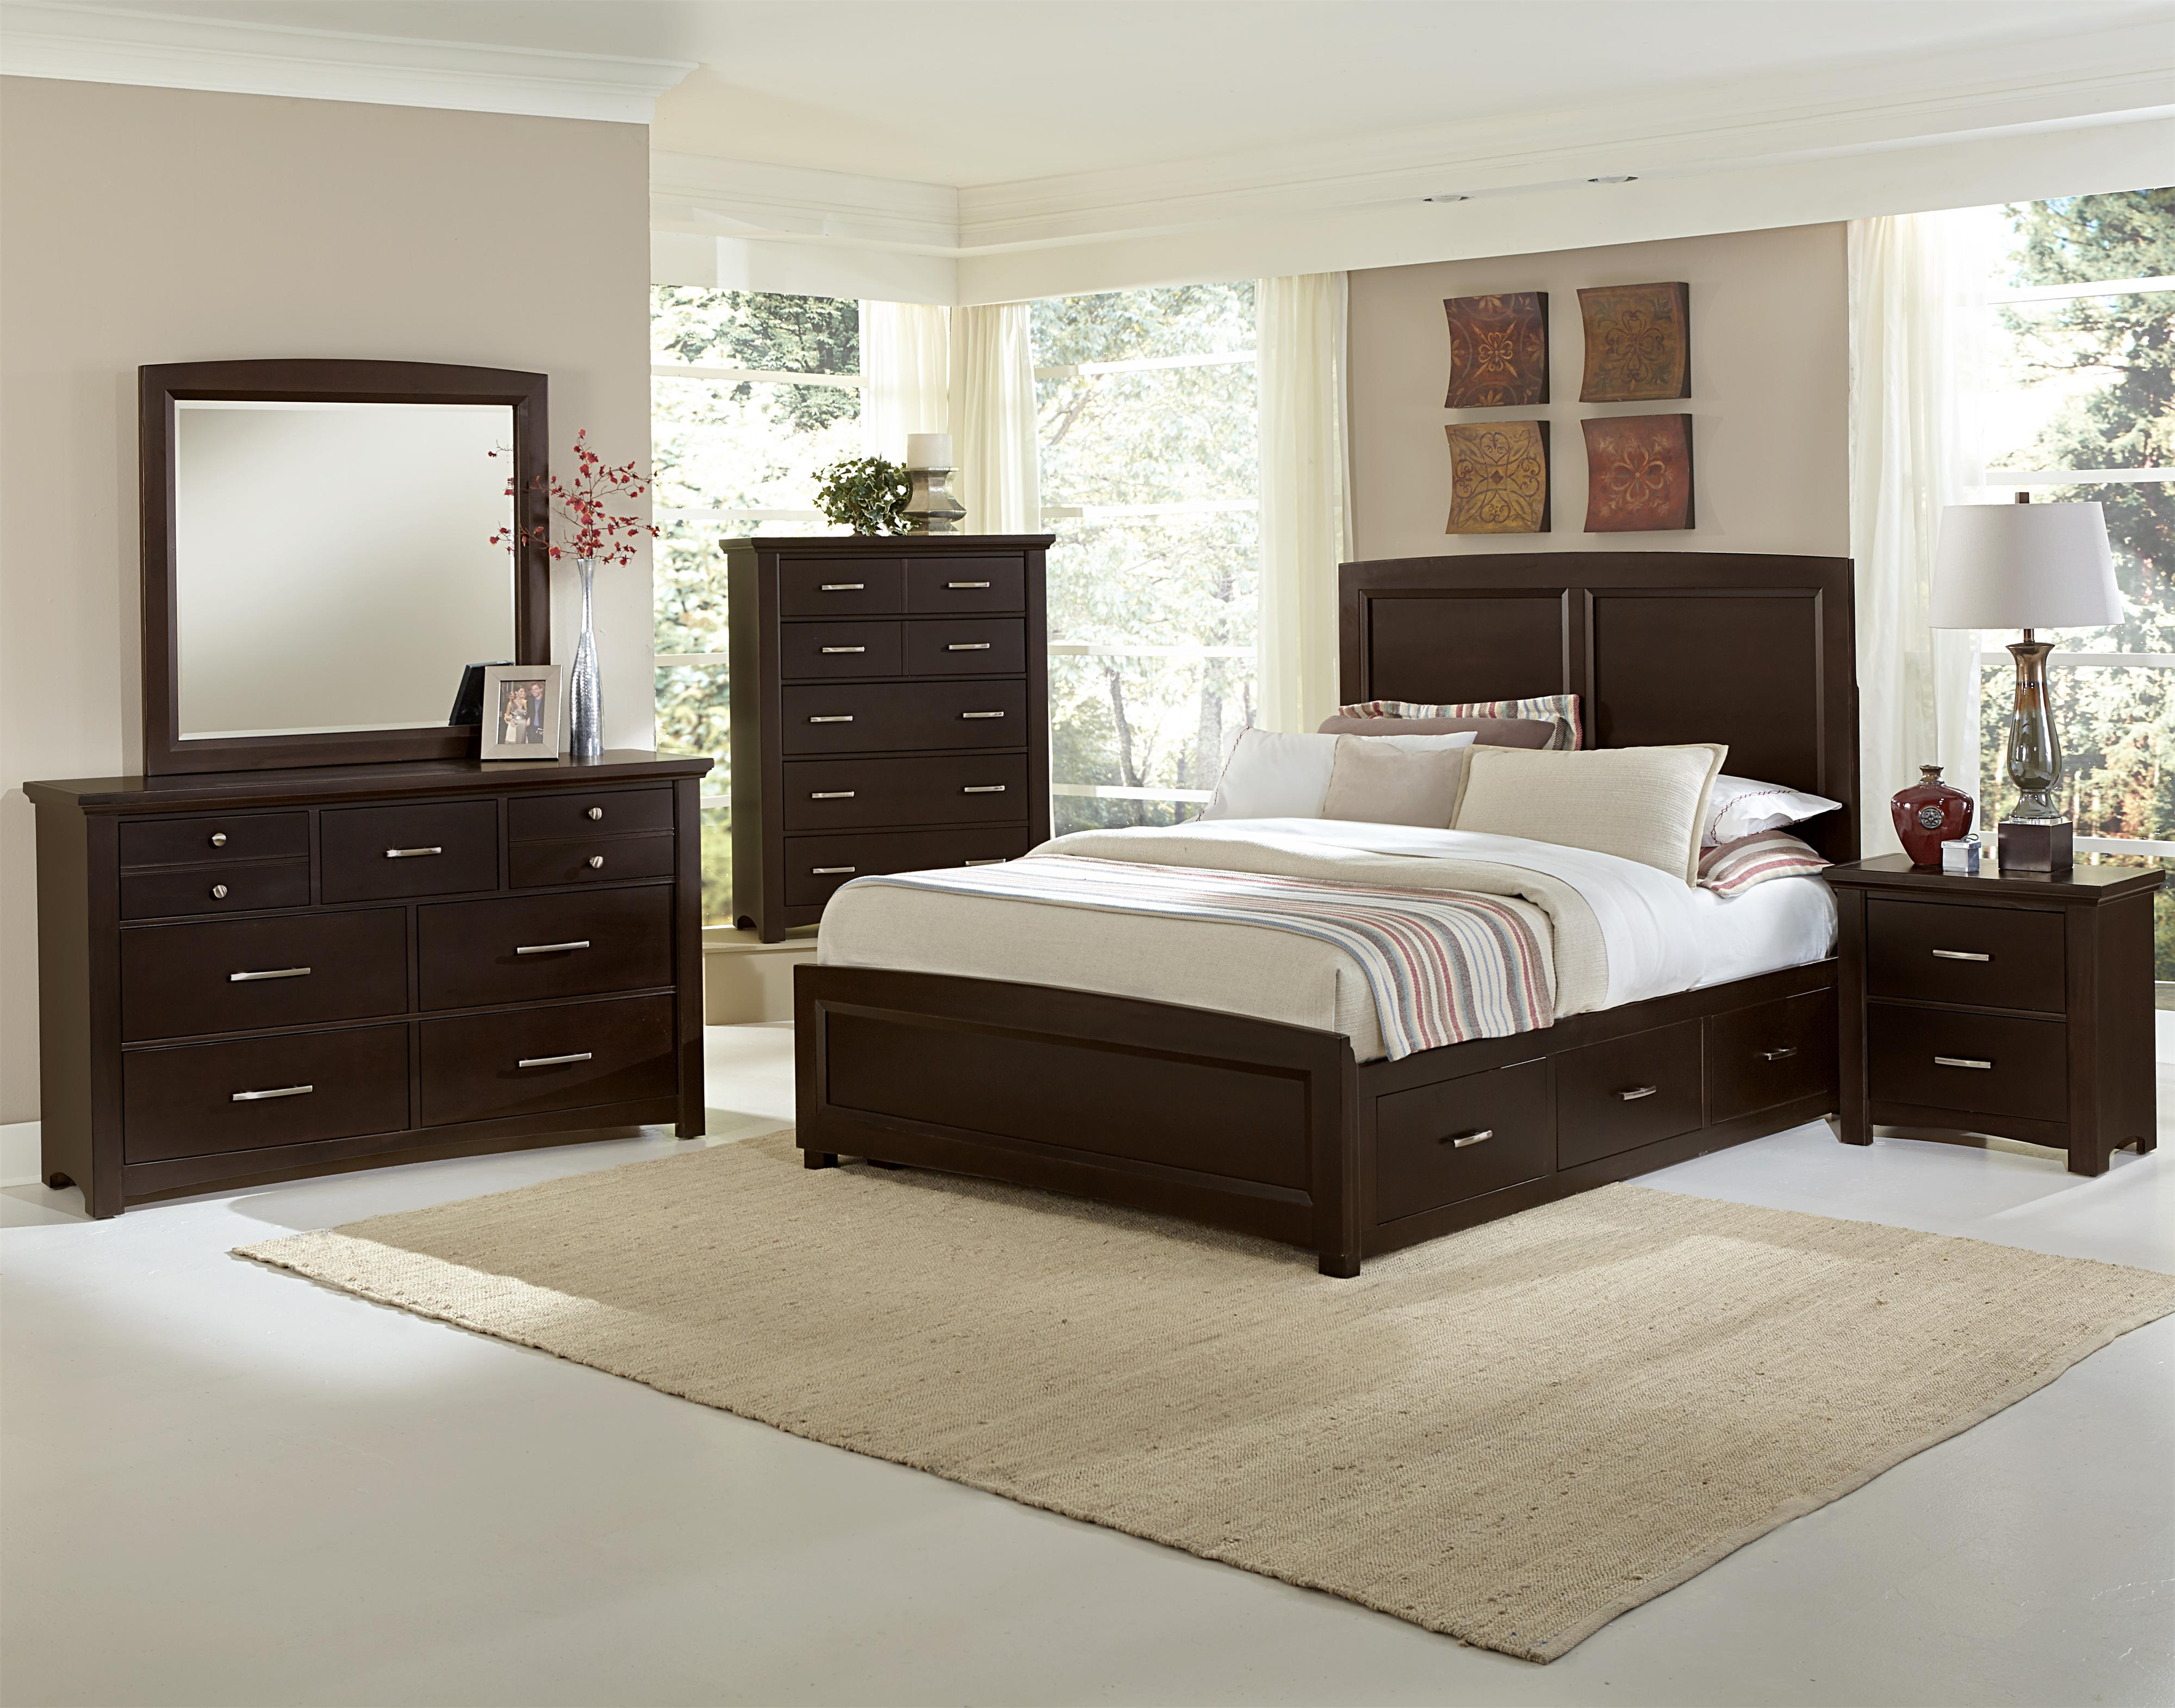 Vaughan bassett transitions king bedroom group belfort for Bedroom furniture groups